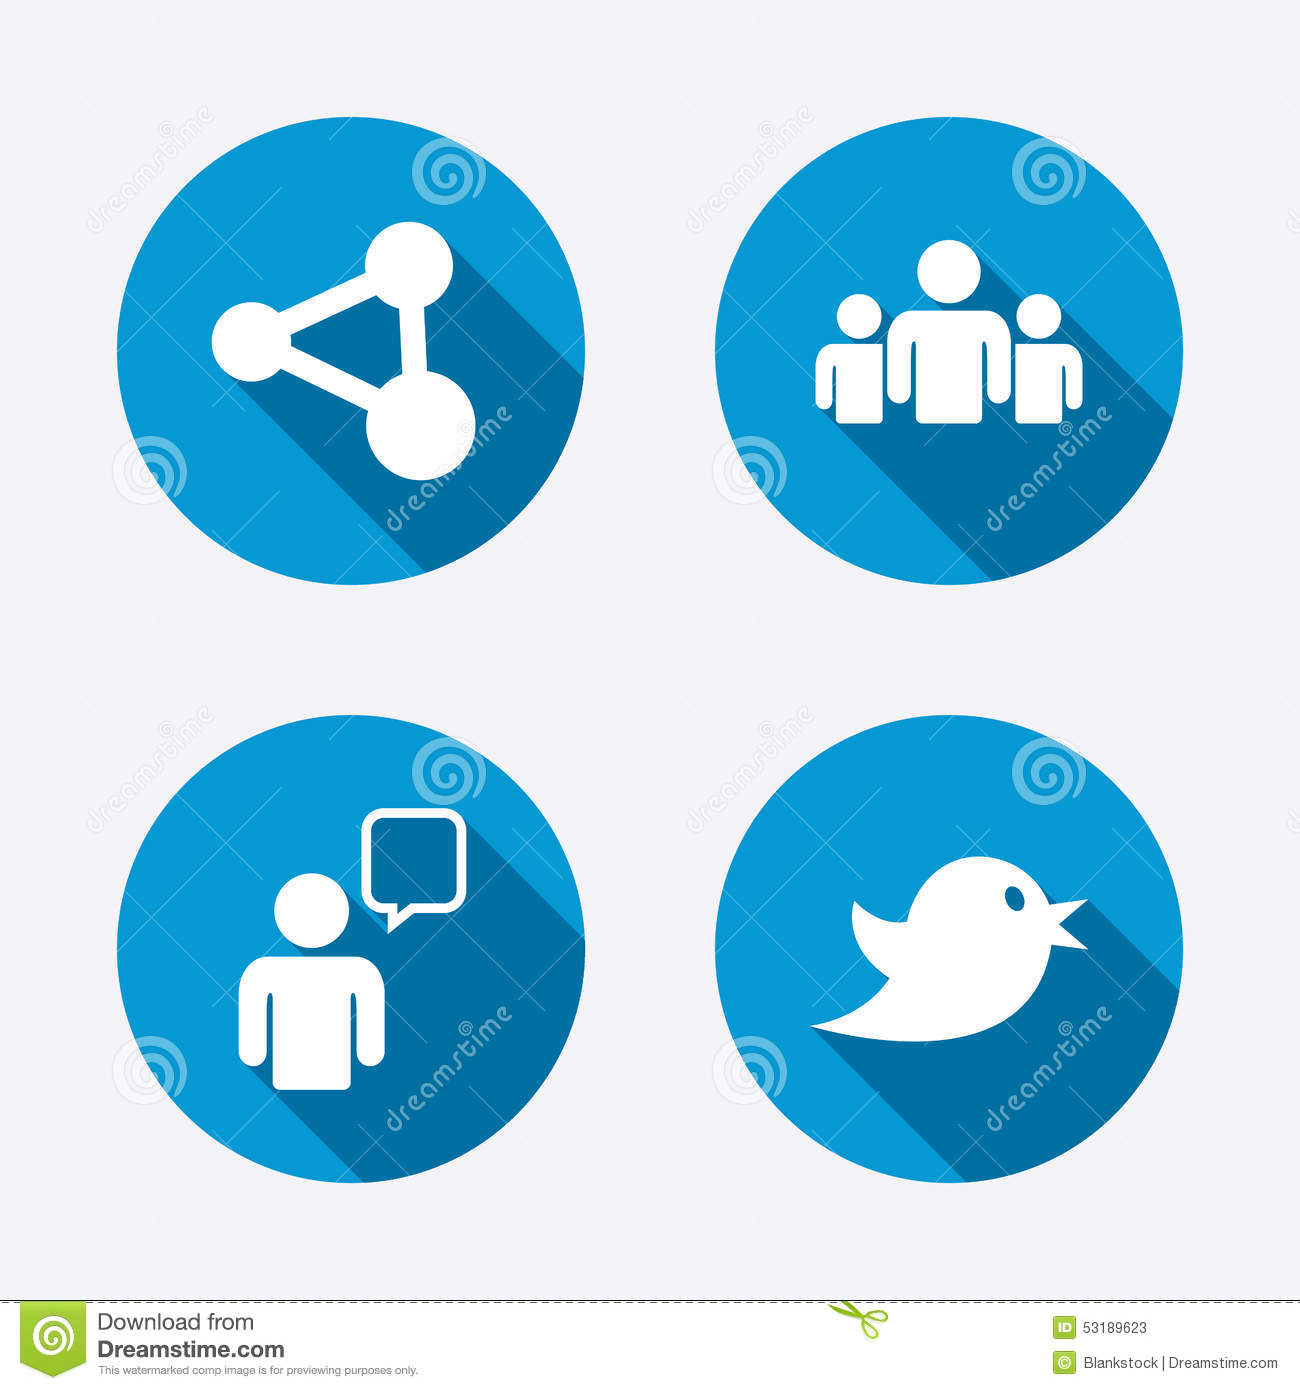 Group Of People And Share Icons Speech Bubble Twitter Retweet Symbols Communication Signs Circle Concept Web Buttons Vector